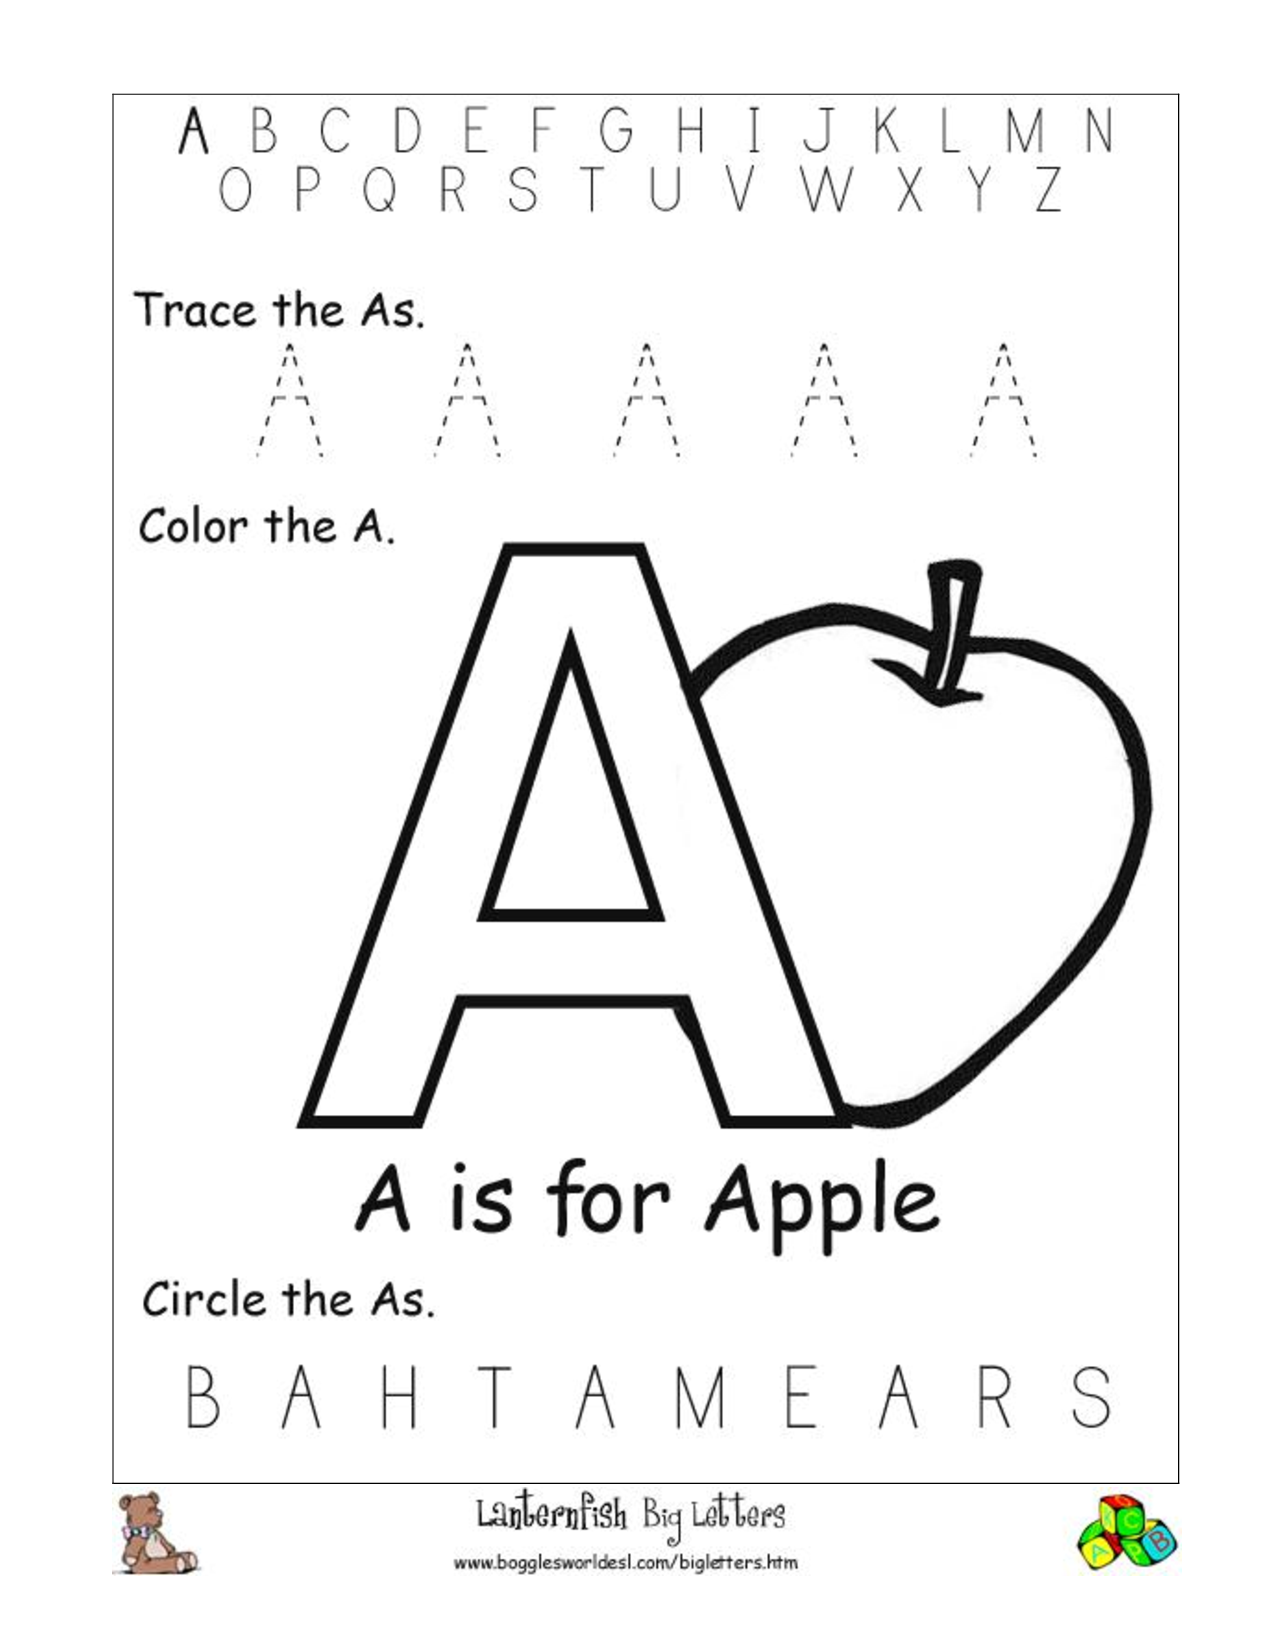 Uncategorized Letter A Worksheet letter a worksheets hd wallpapers download free tumblr pinterest wallpapers